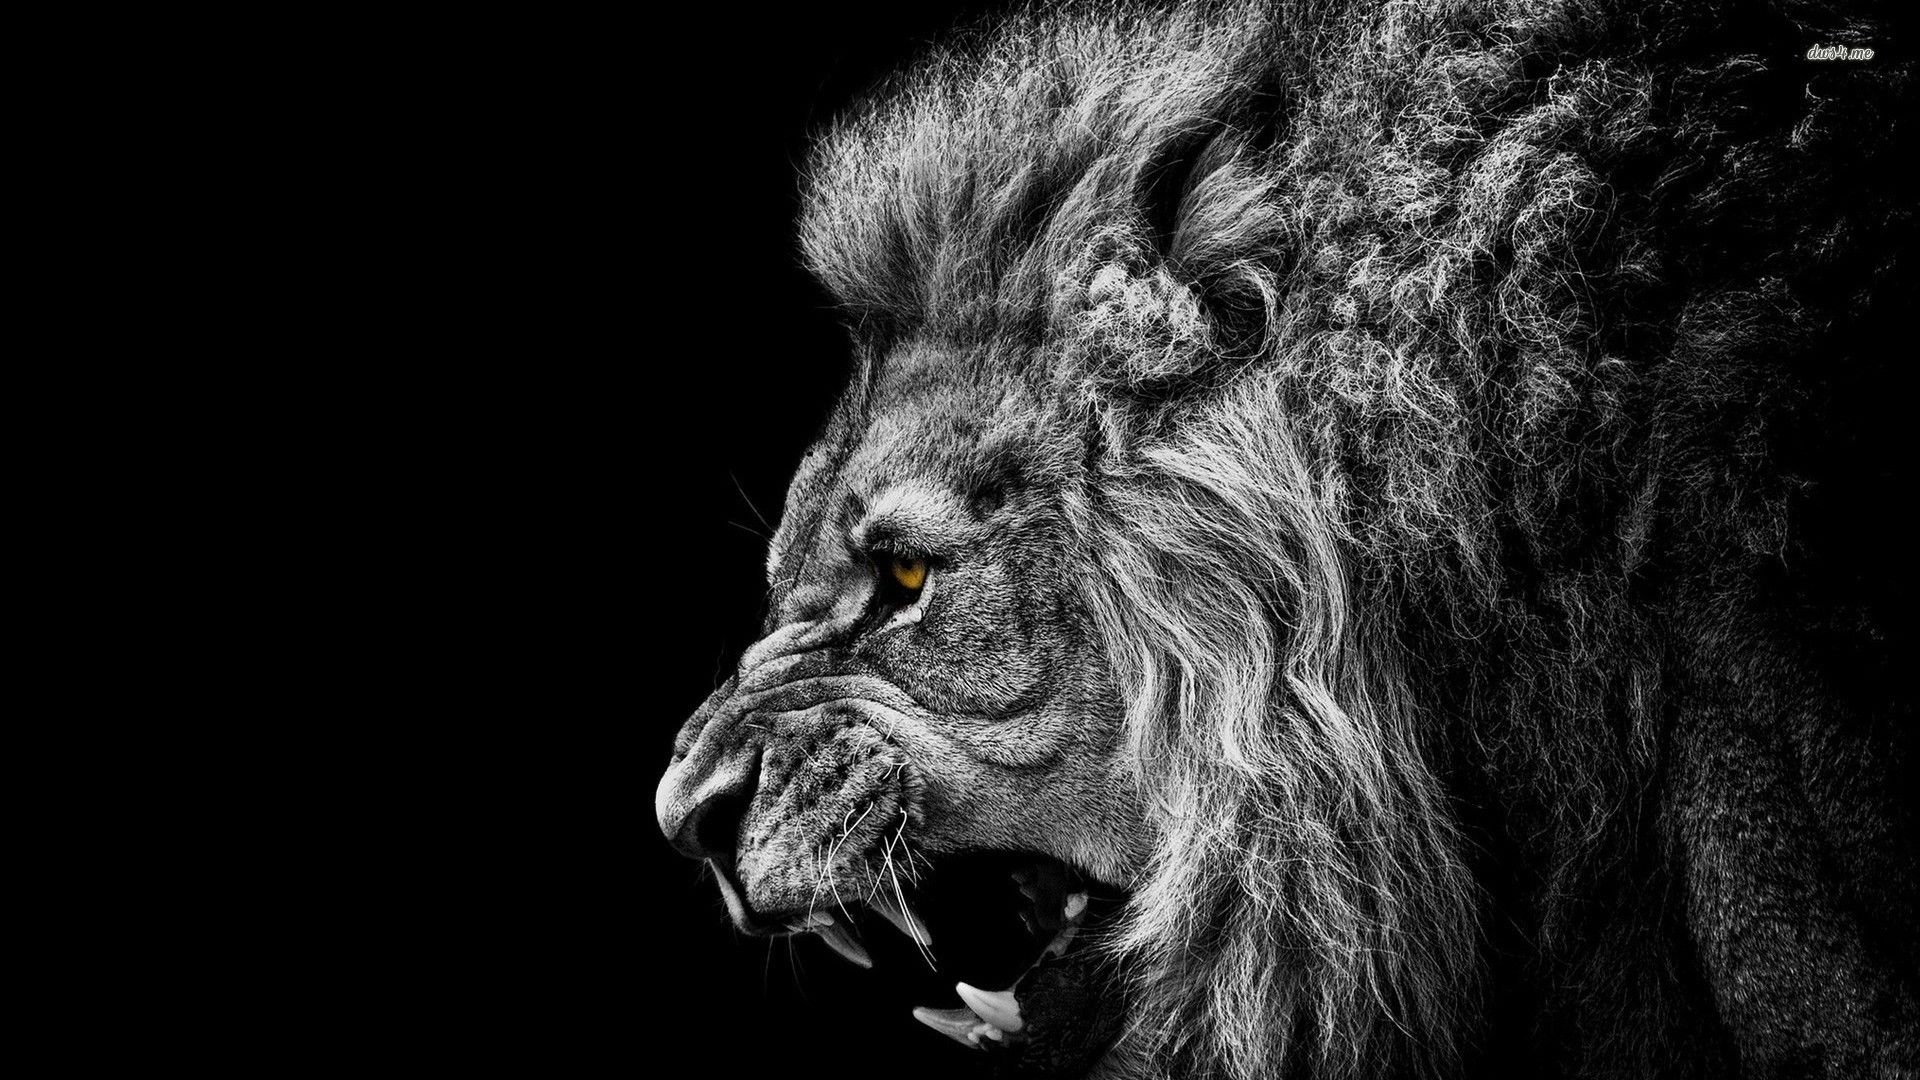 Angry Lion Wallpapers High Quality Resolution Lion Hd Wallpaper Lion Wallpaper Black And White Lion